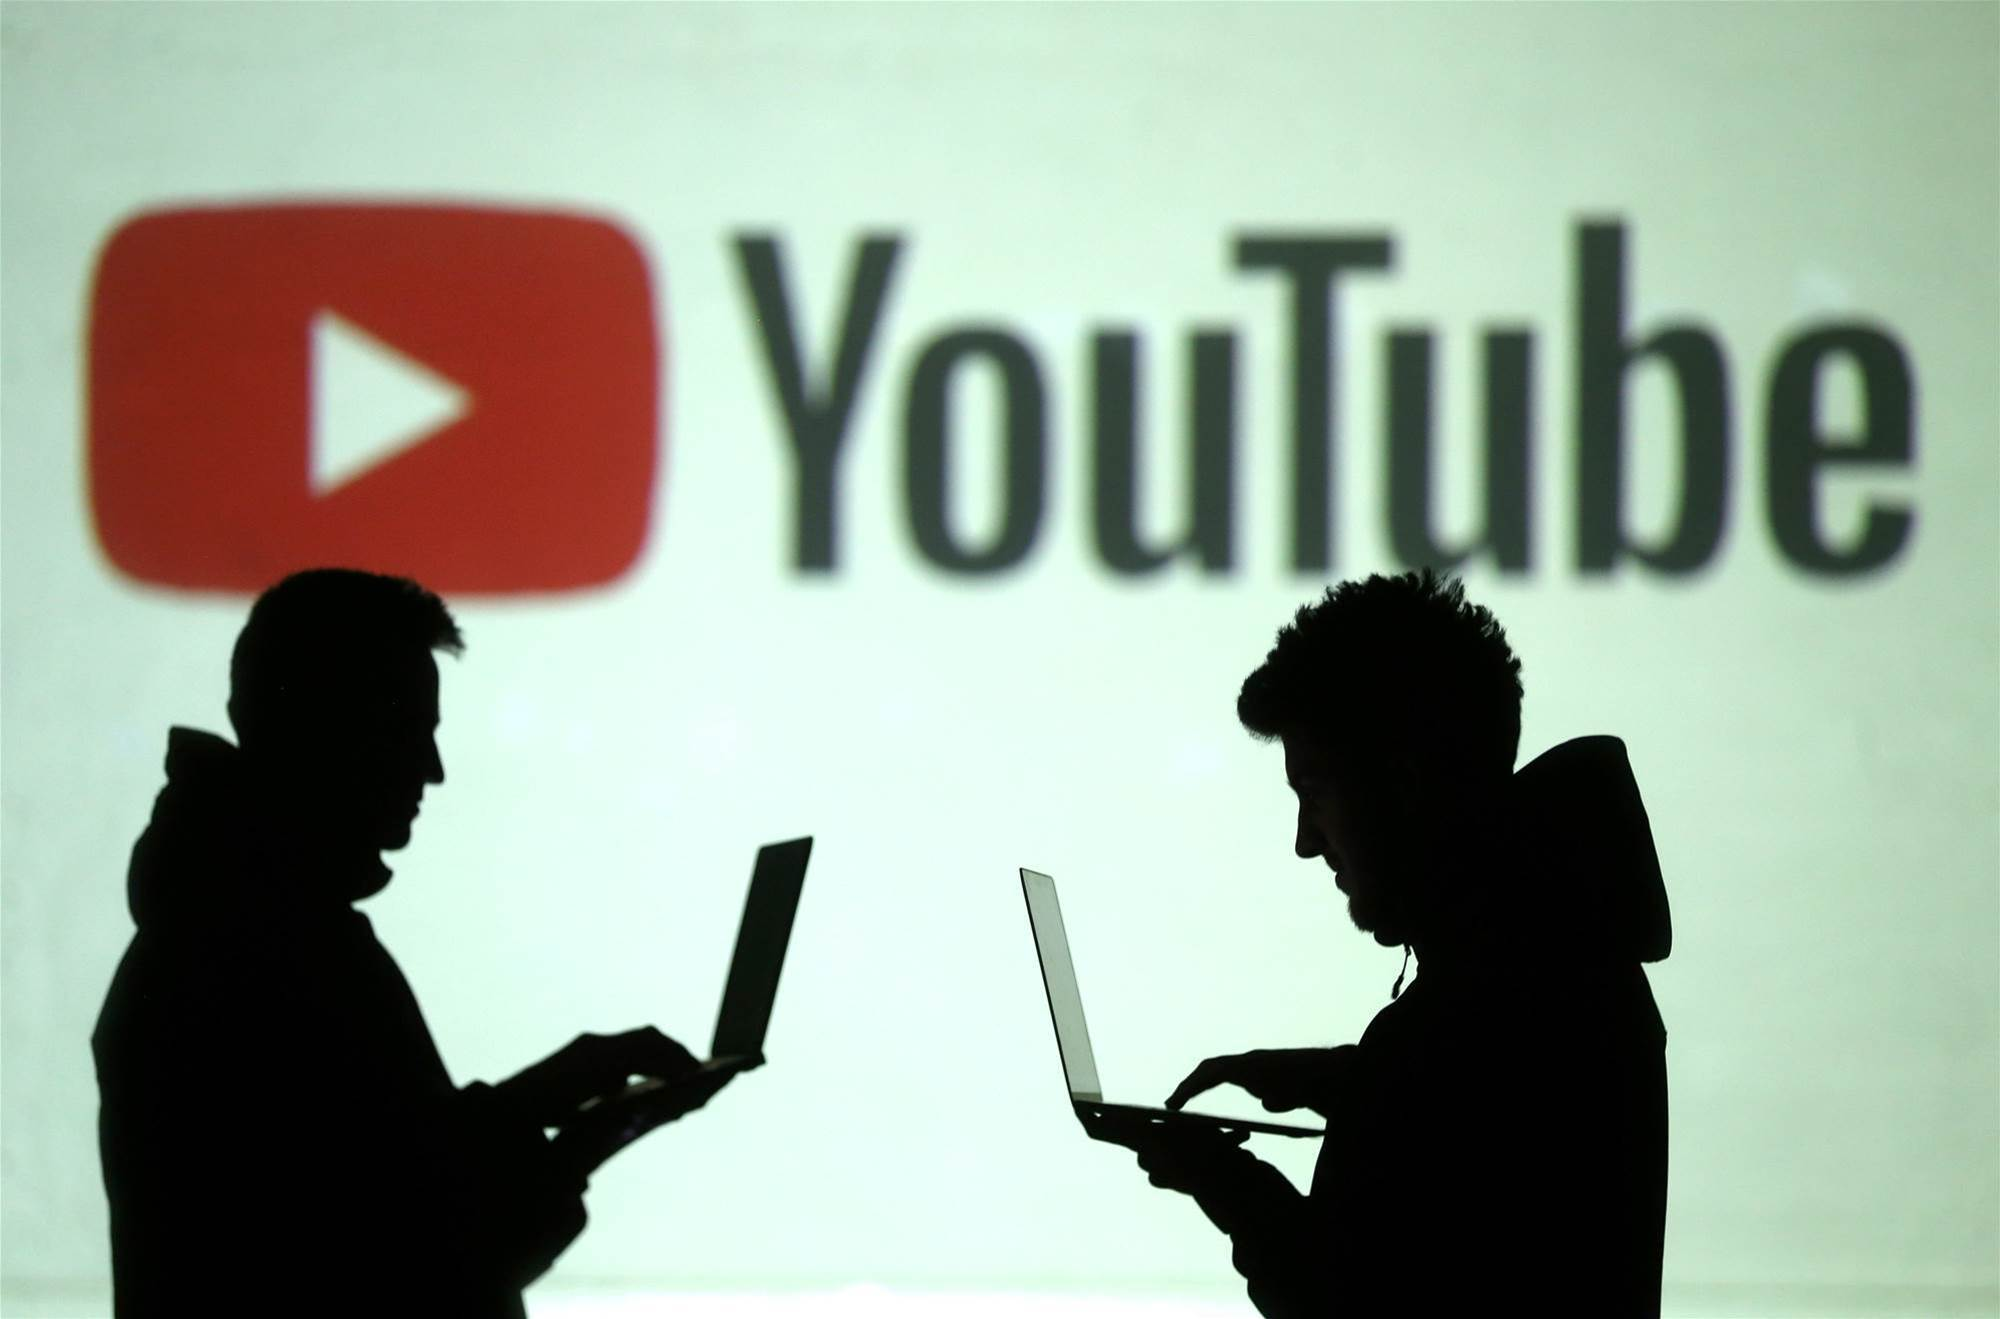 EU copyright reforms pits creative industry against internet activists